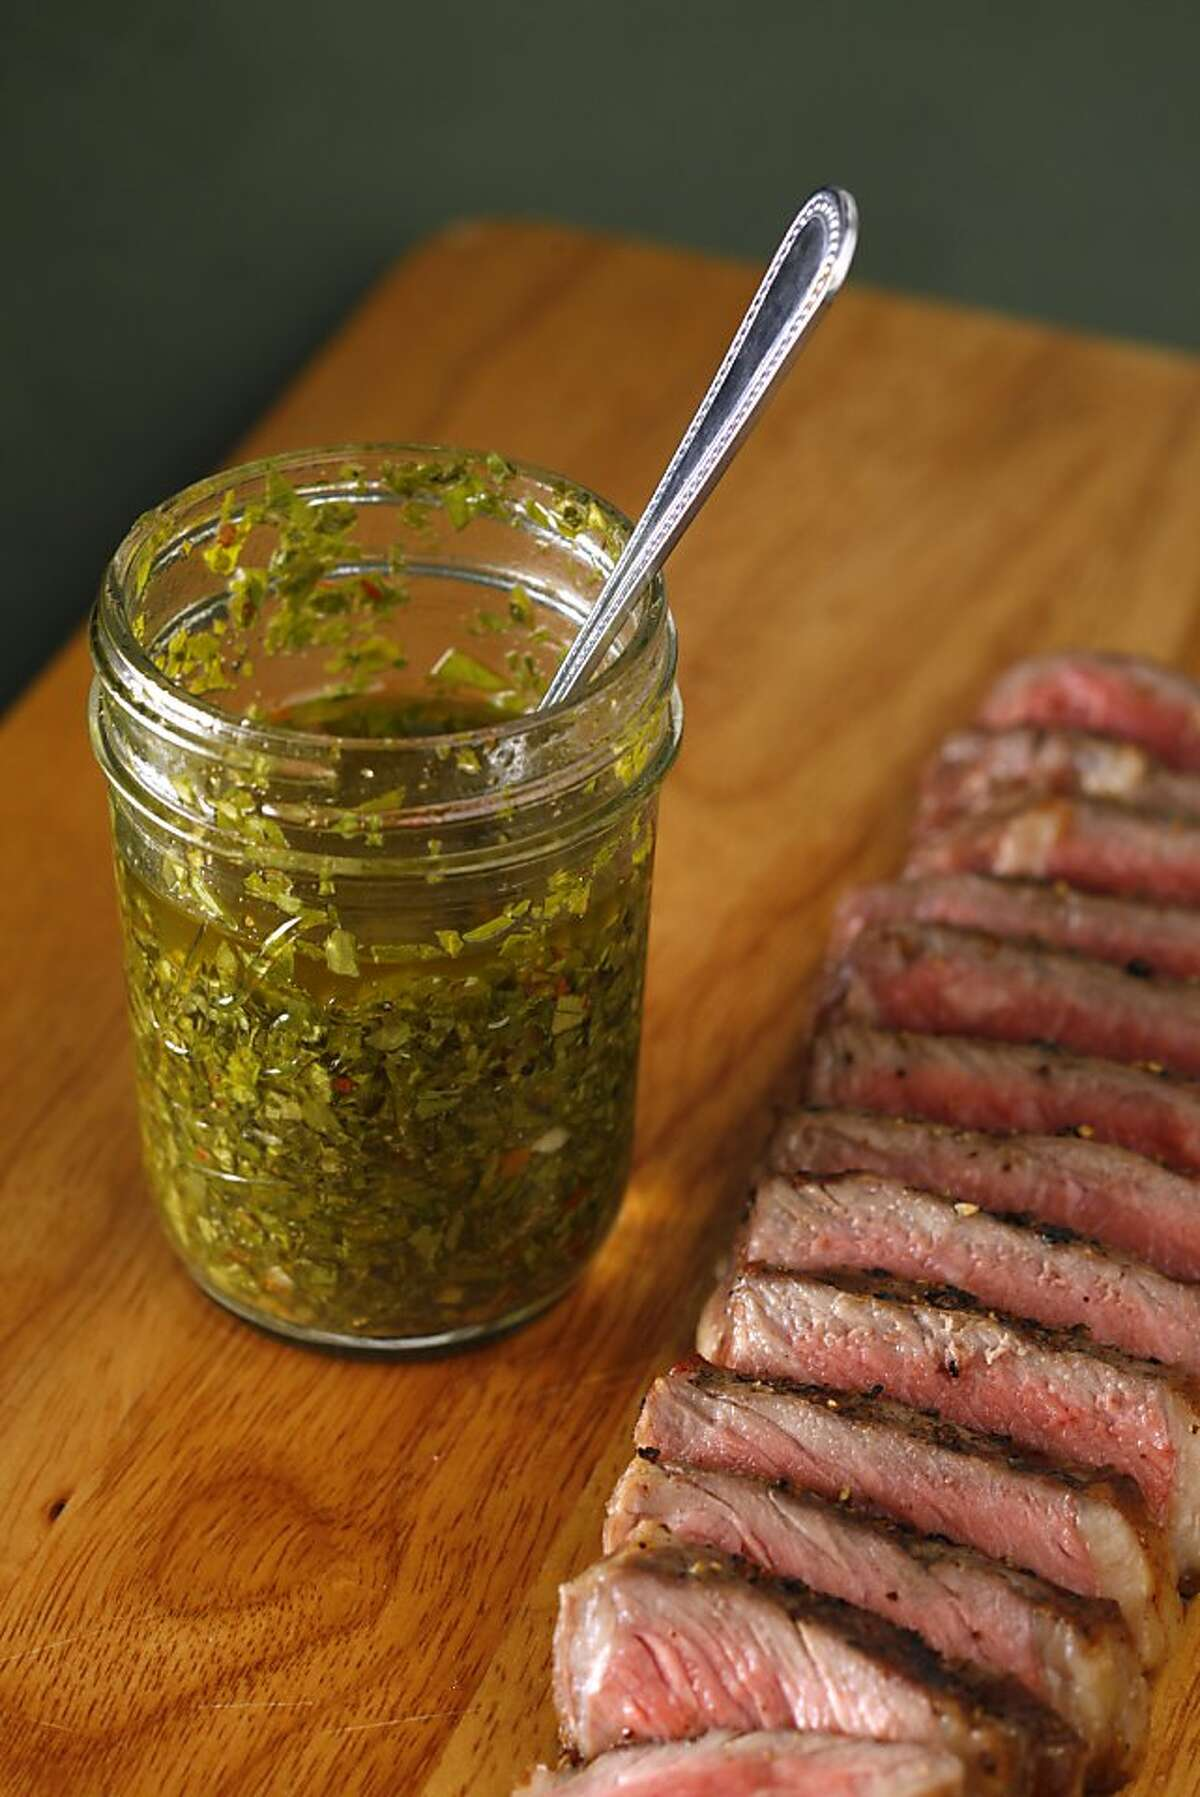 Destino's Chimichurri (accompanying a steak) as seen in San Francisco, California, on Wednesday, September 26, 2012. Food styled by Lauren N. Reuthinger.